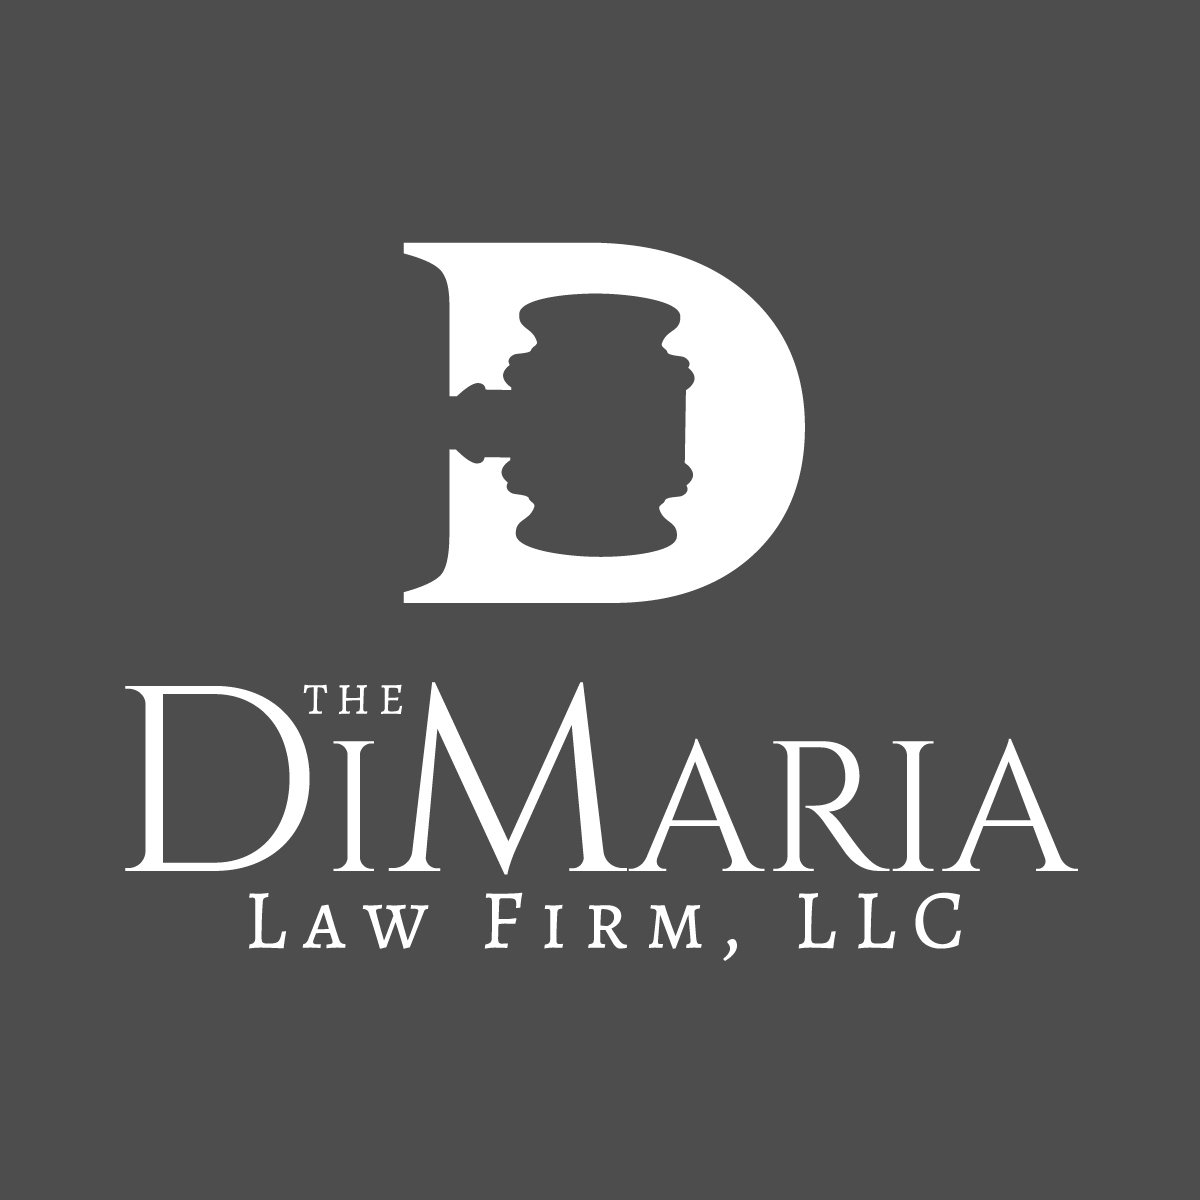 The DiMaria Law Firm, LLC